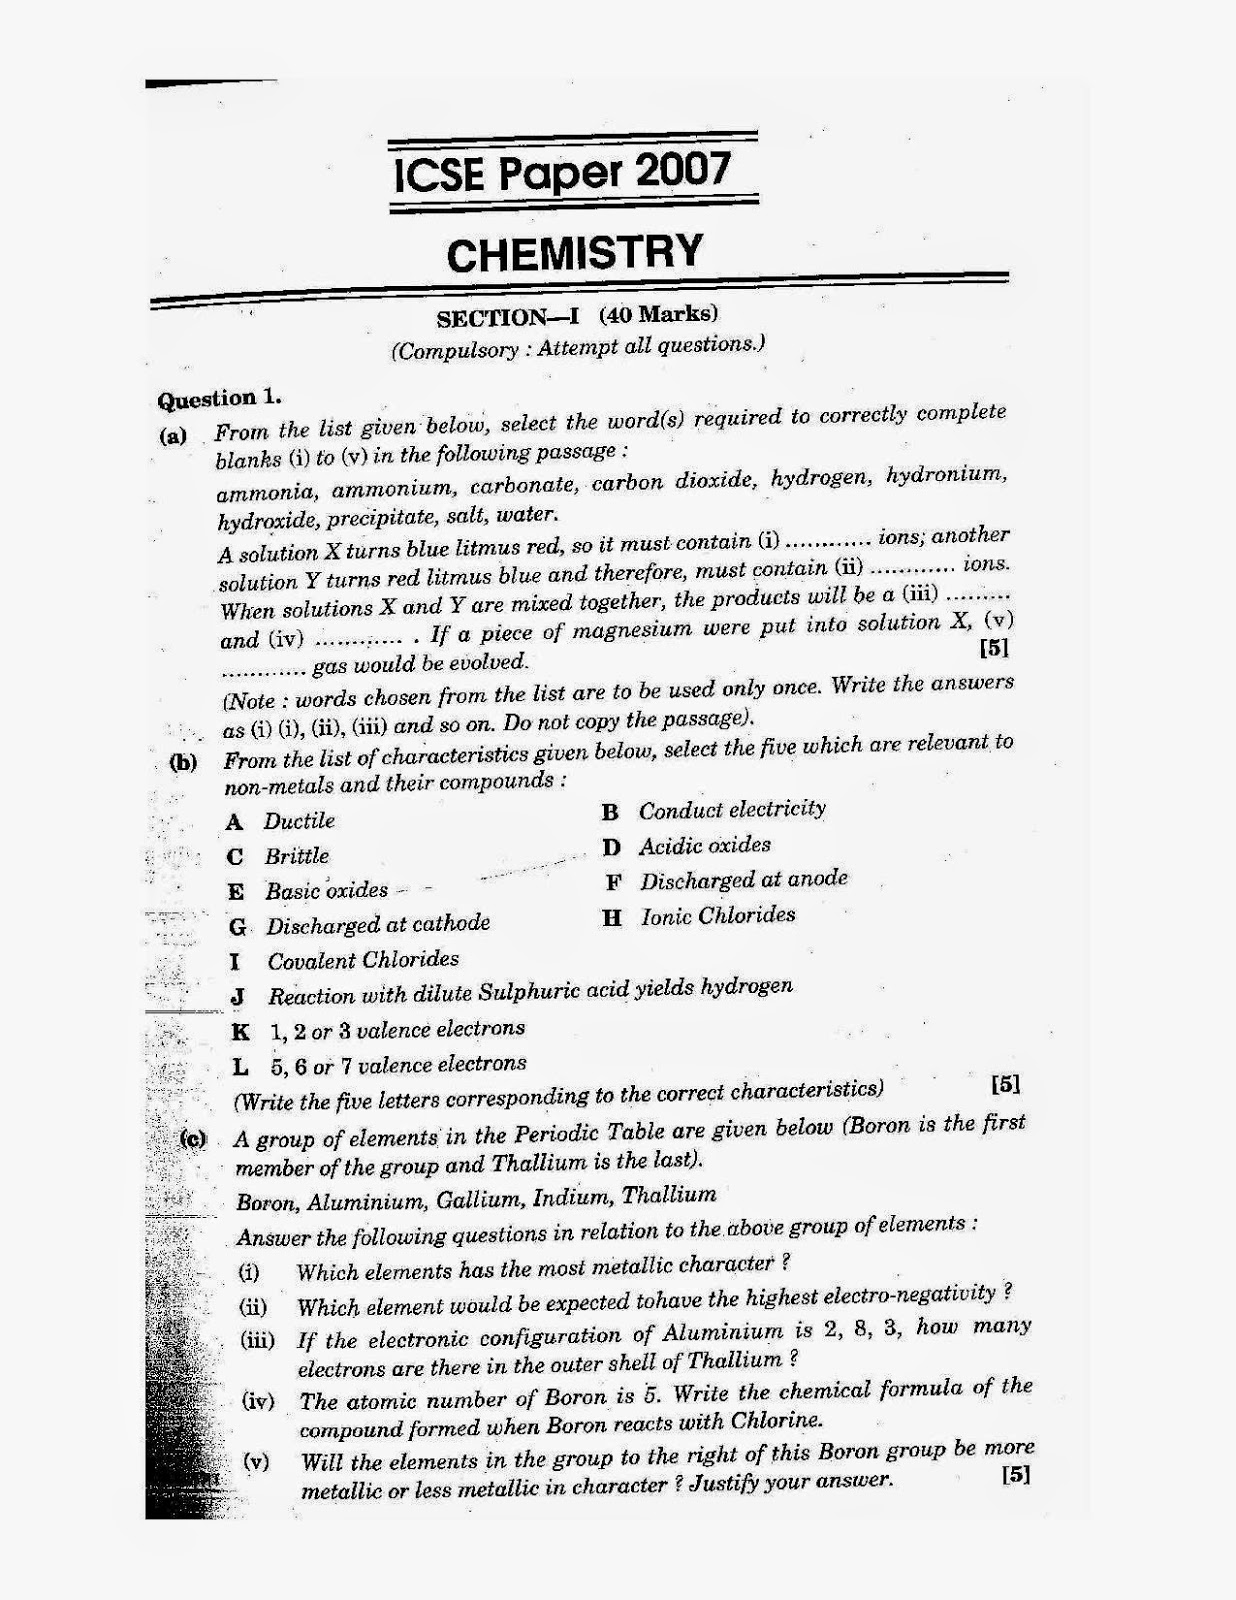 Sixth term examination papers chemistry